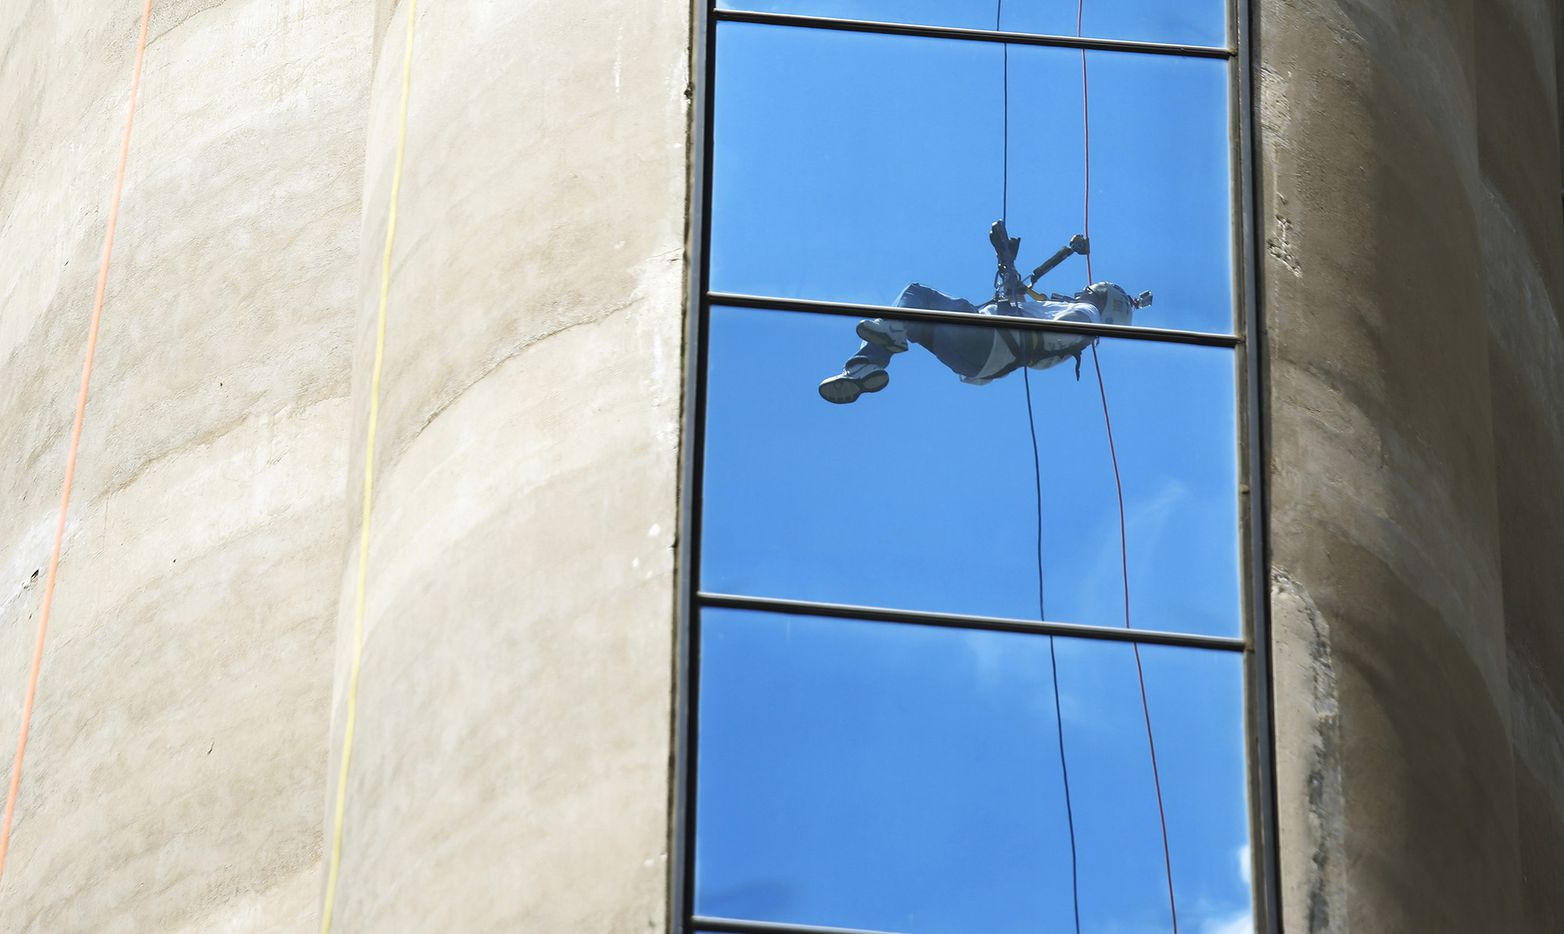 """David Rogers is reflected in a glass panel on Reunion Tower as he rappels off of Reunion Tower during the Shatterproof Challenge Rappel Dallas event on May 13. The event raised money for Shatterproof, a nonprofit founded by Rogers in memory of his son, Brandon """"Bubba"""" Rogers, who died as a result of heroin addiction."""